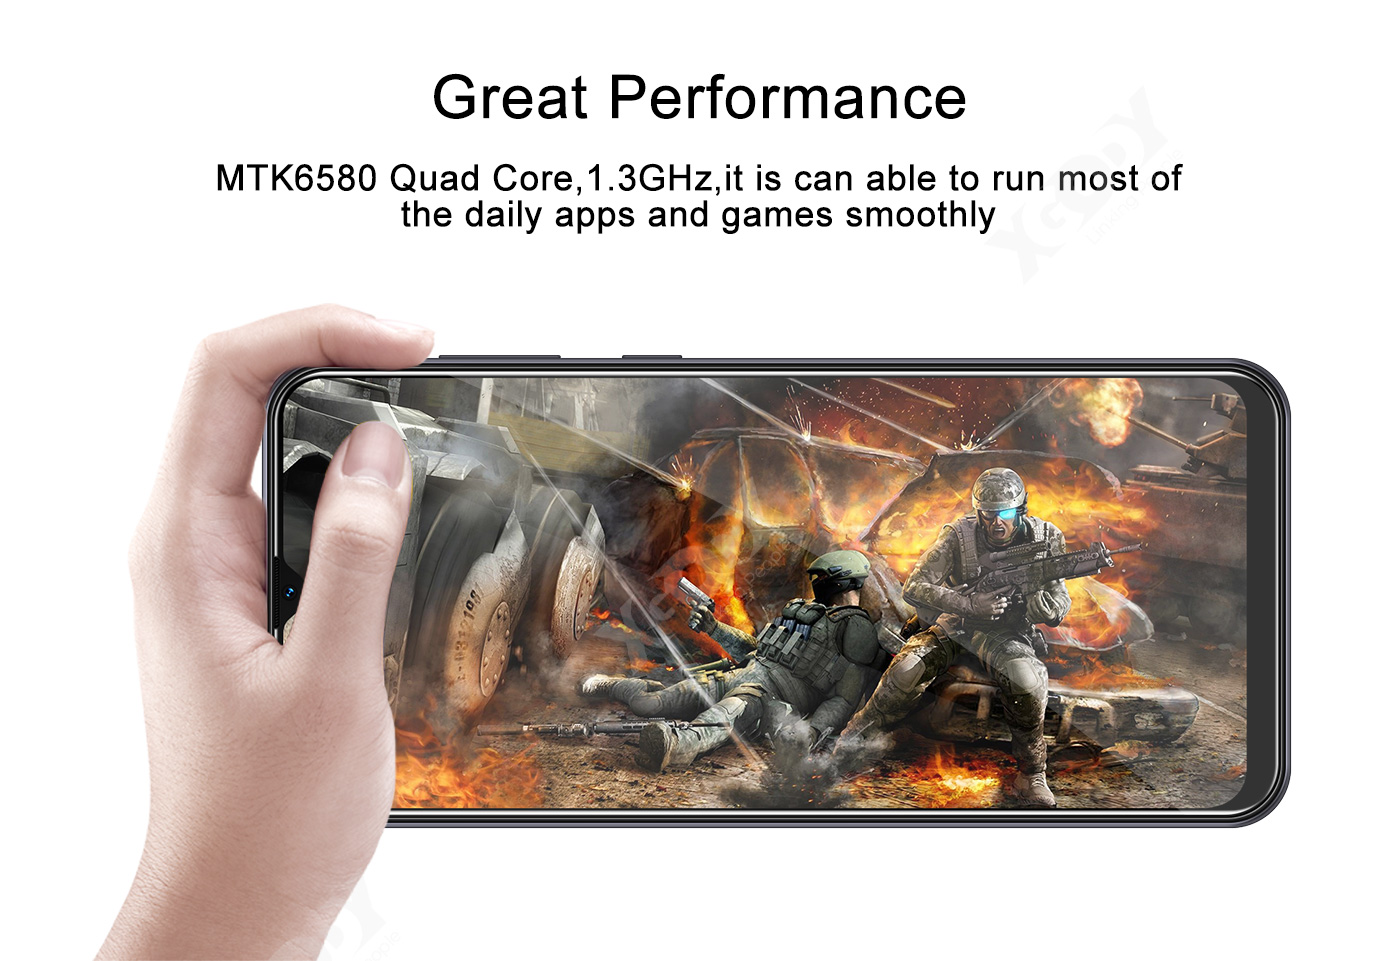 Cheap 6.6 Inch Android Smartphone Unlocked Mobile Phone Dual SIM Quad Core New